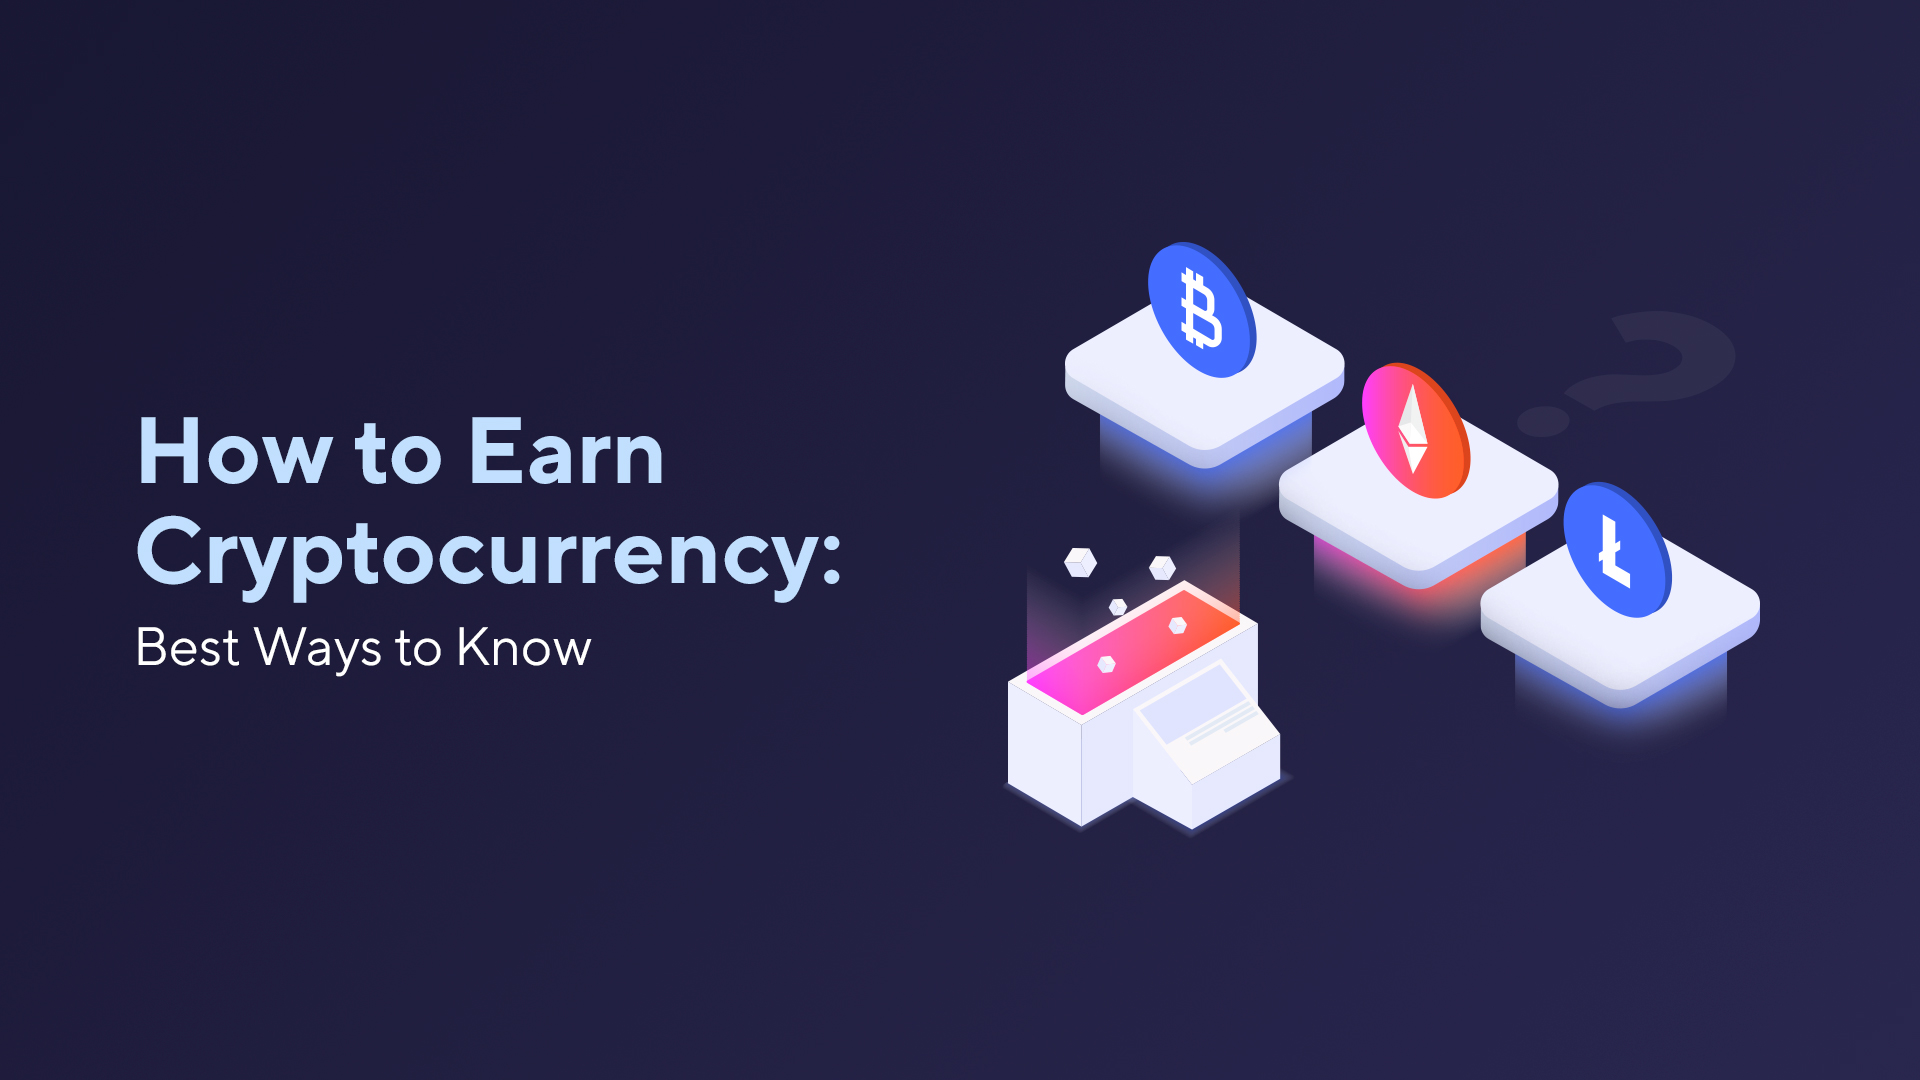 How to Earn Cryptocurrency: Best Ways to Know